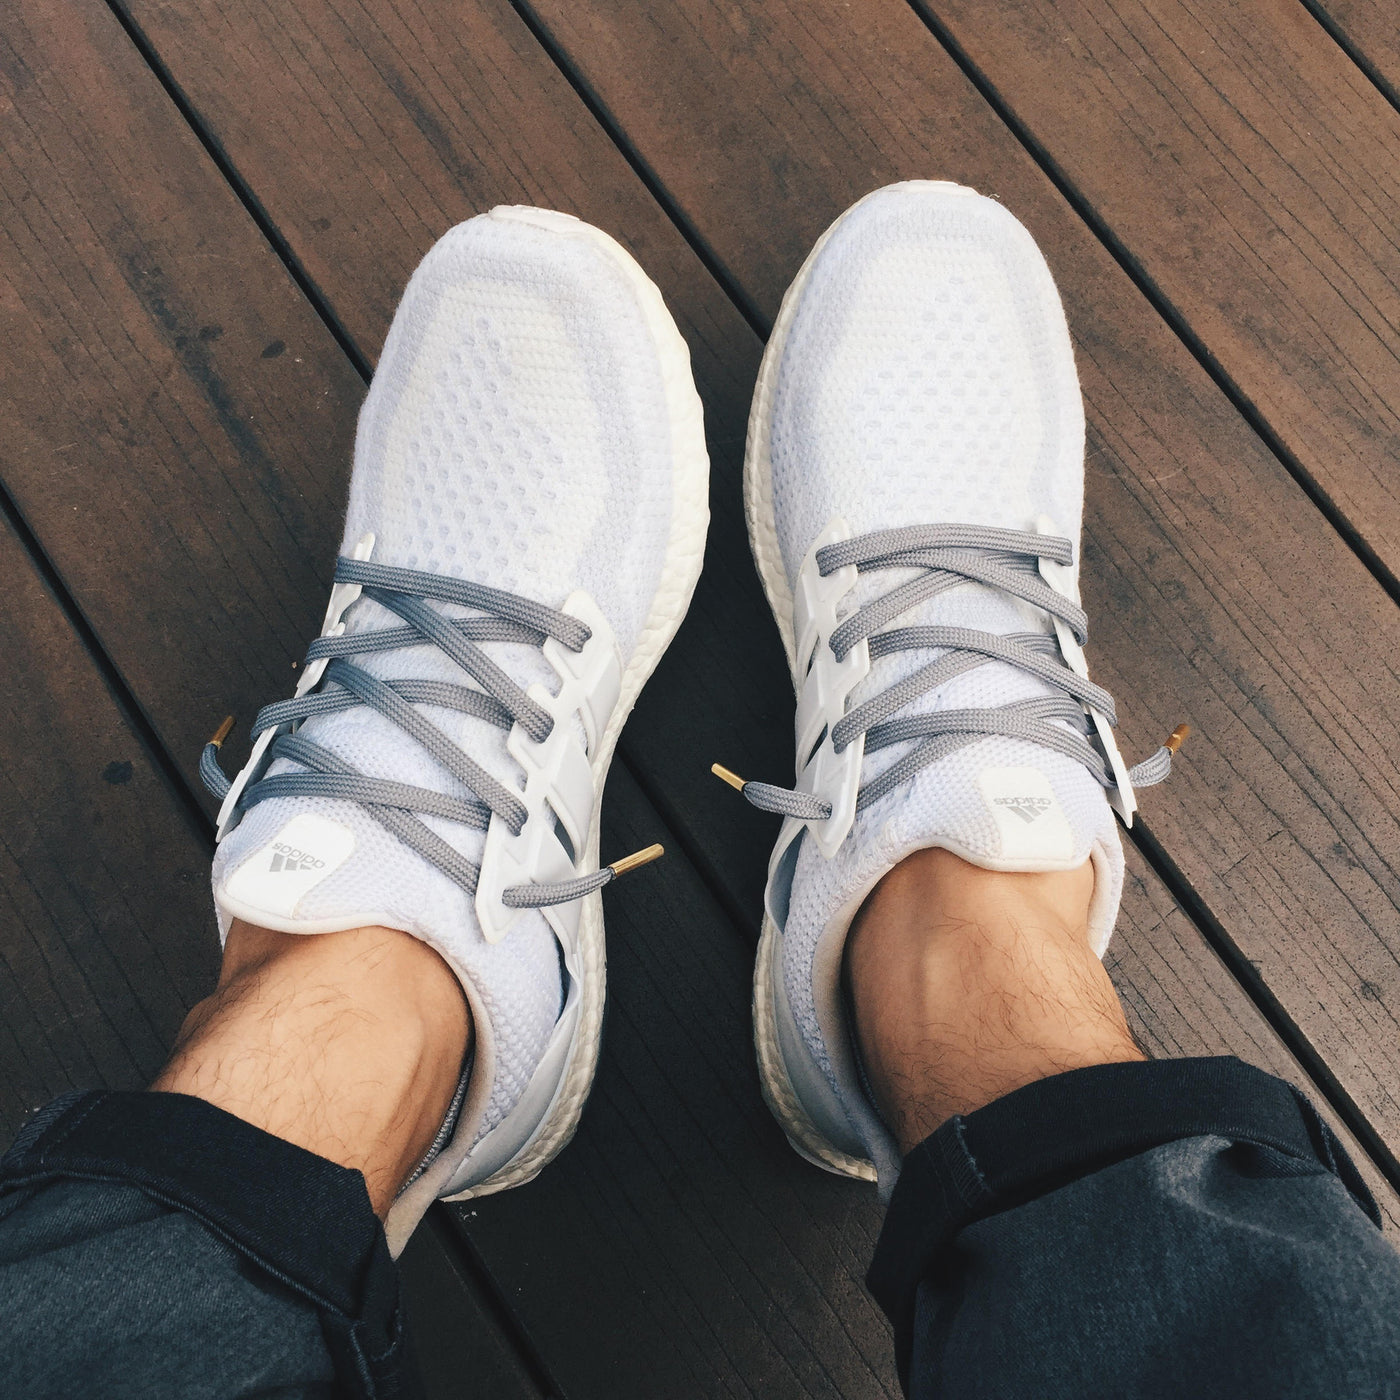 cf3ef404a7c8 SHOELACE RECOMMENDATIONS - Adidas Ultra Boost White - Slickies